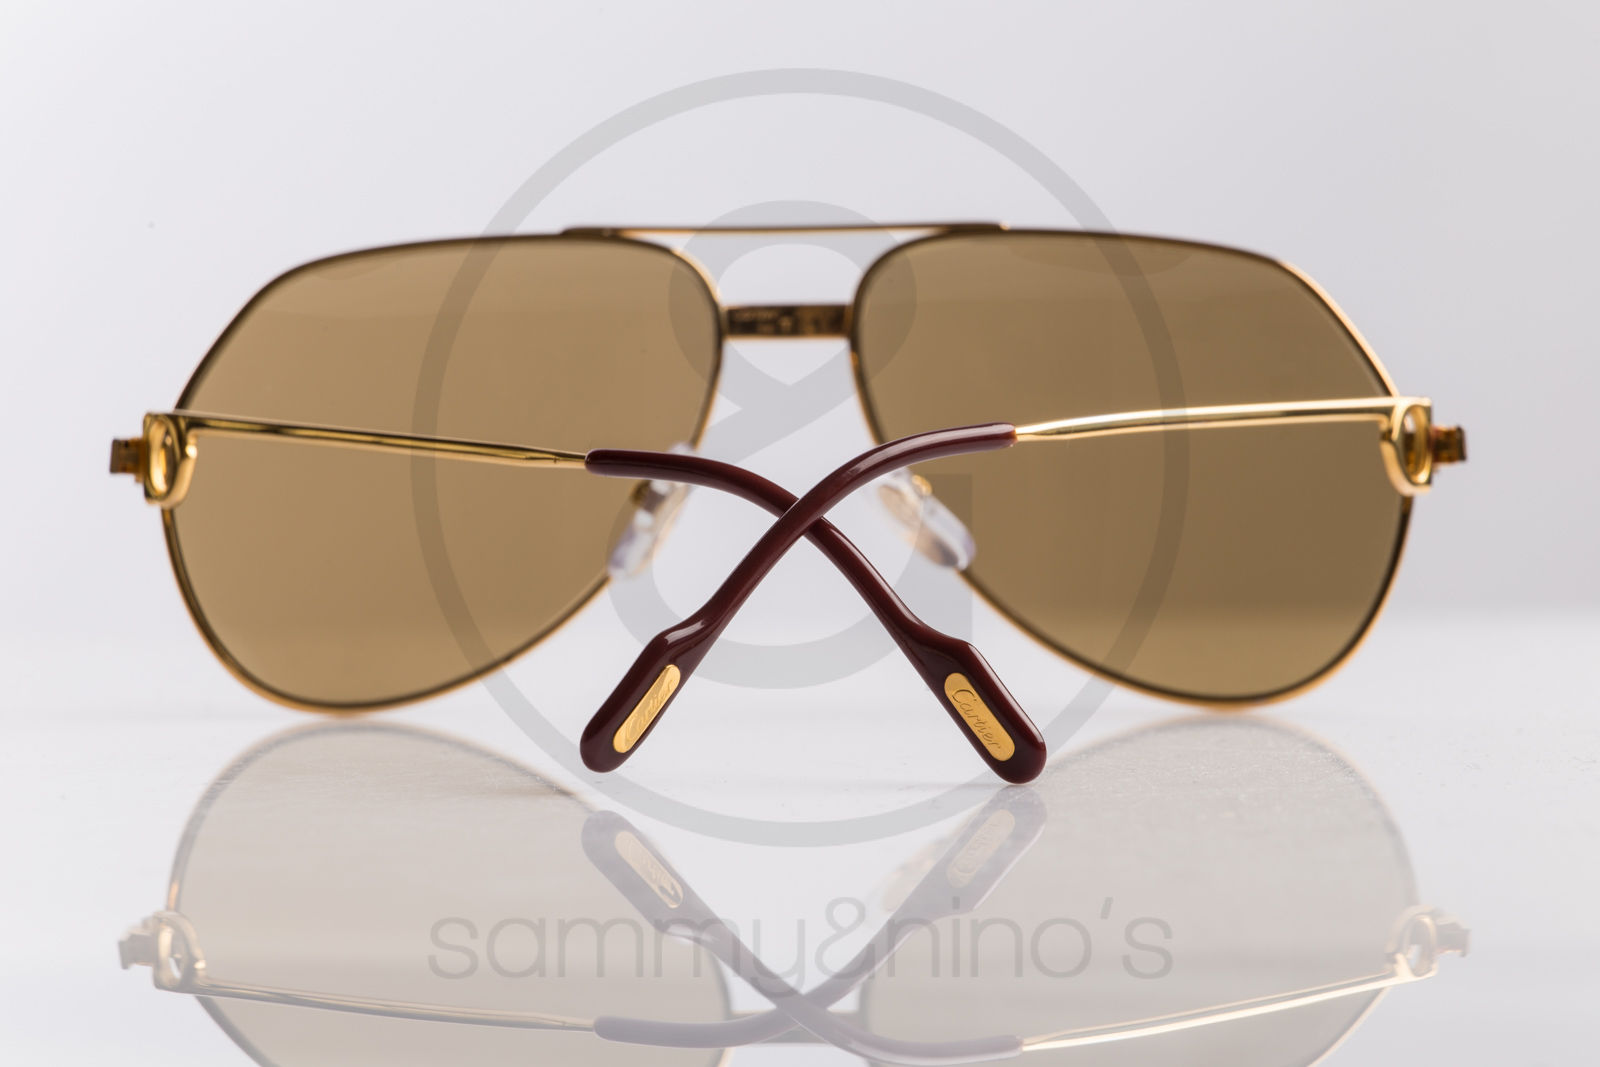 ab16792a907d Cartier Sunglasses Santos Aviator - Restaurant and Palinka Bar